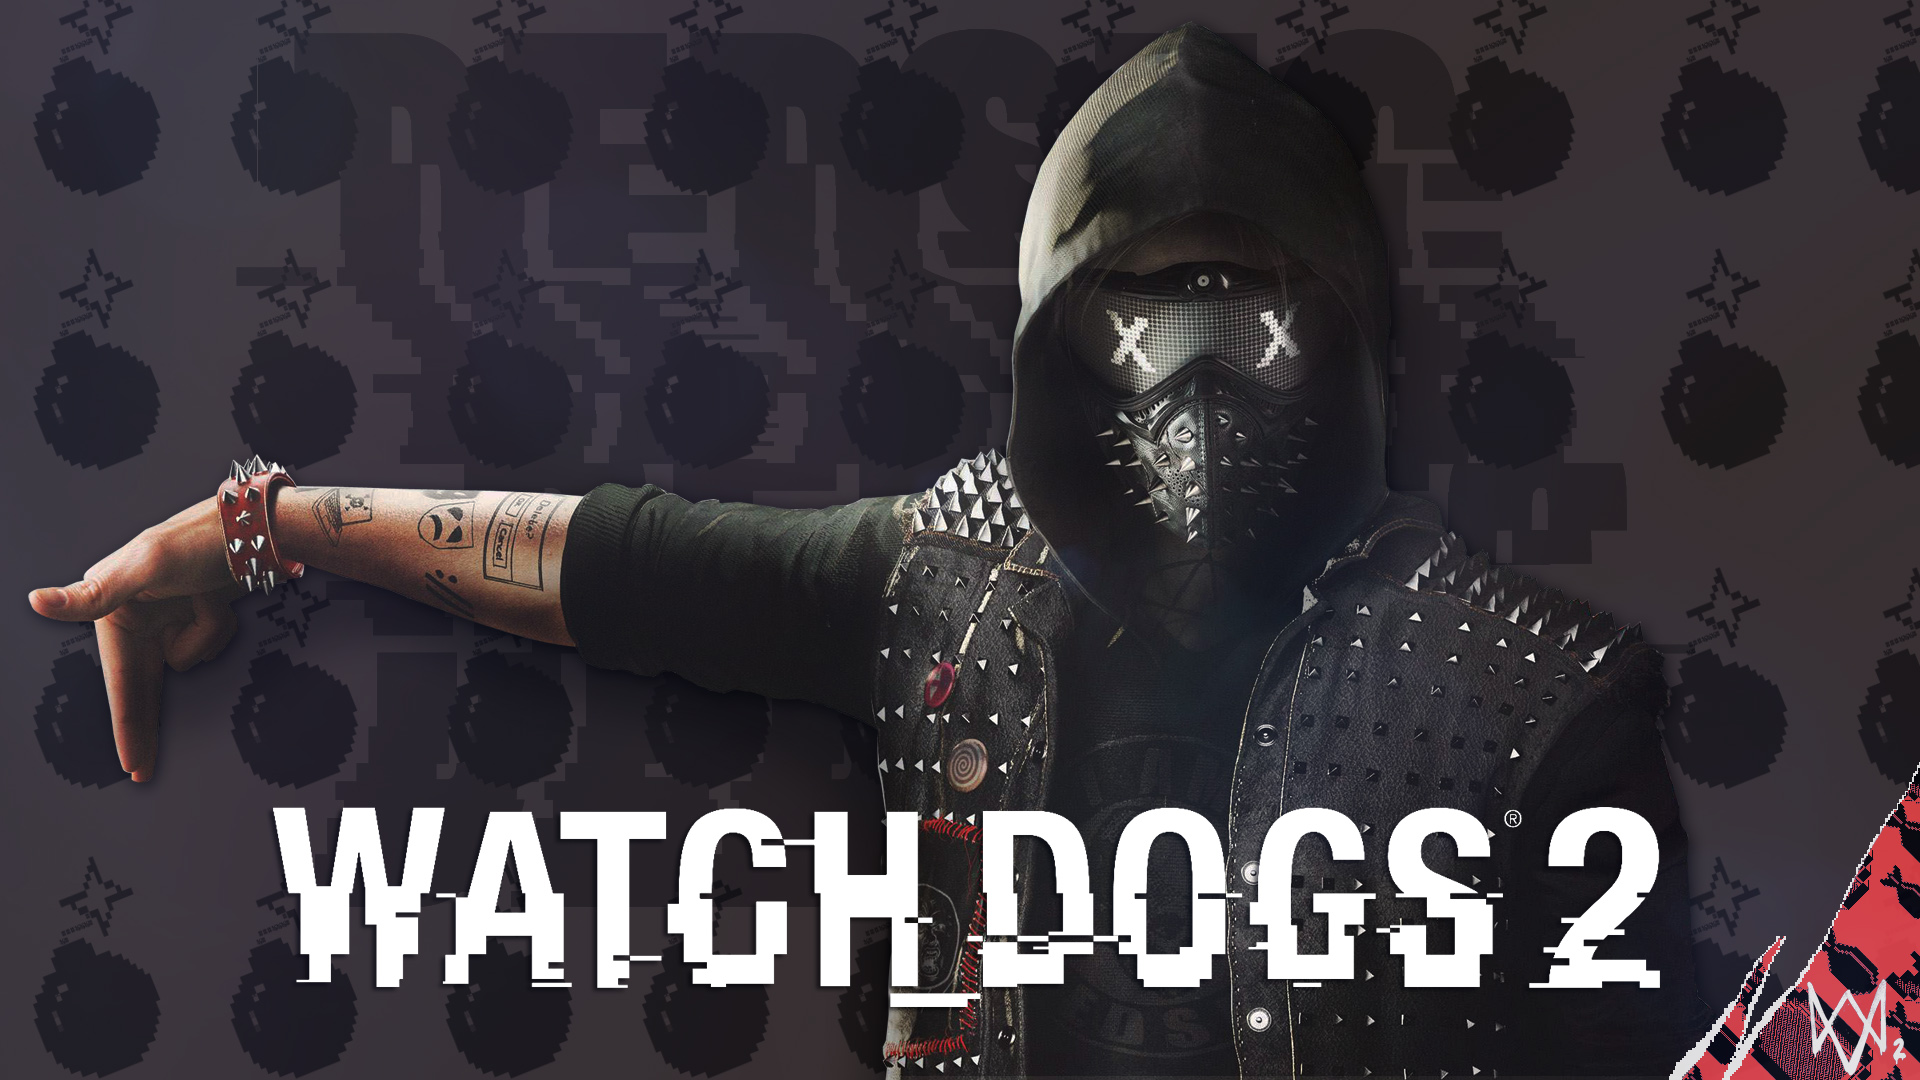 1920x1080 Wrench Watch Dogs 2 Laptop Full Hd 1080p Hd 4k Wallpapers Images Backgrounds Photos And Pictures